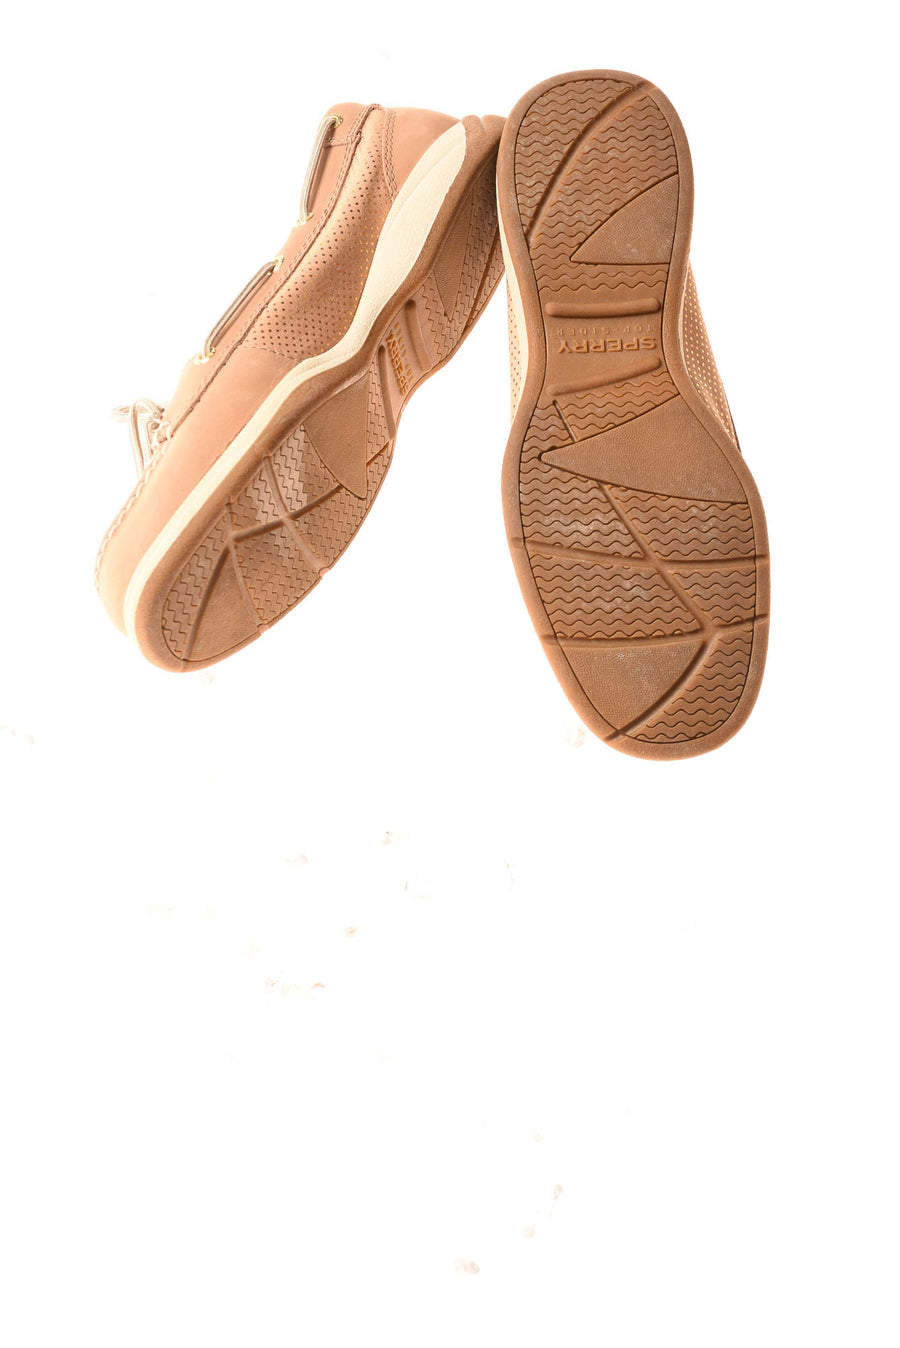 USED Sperry Women's Shoe 7 Tan